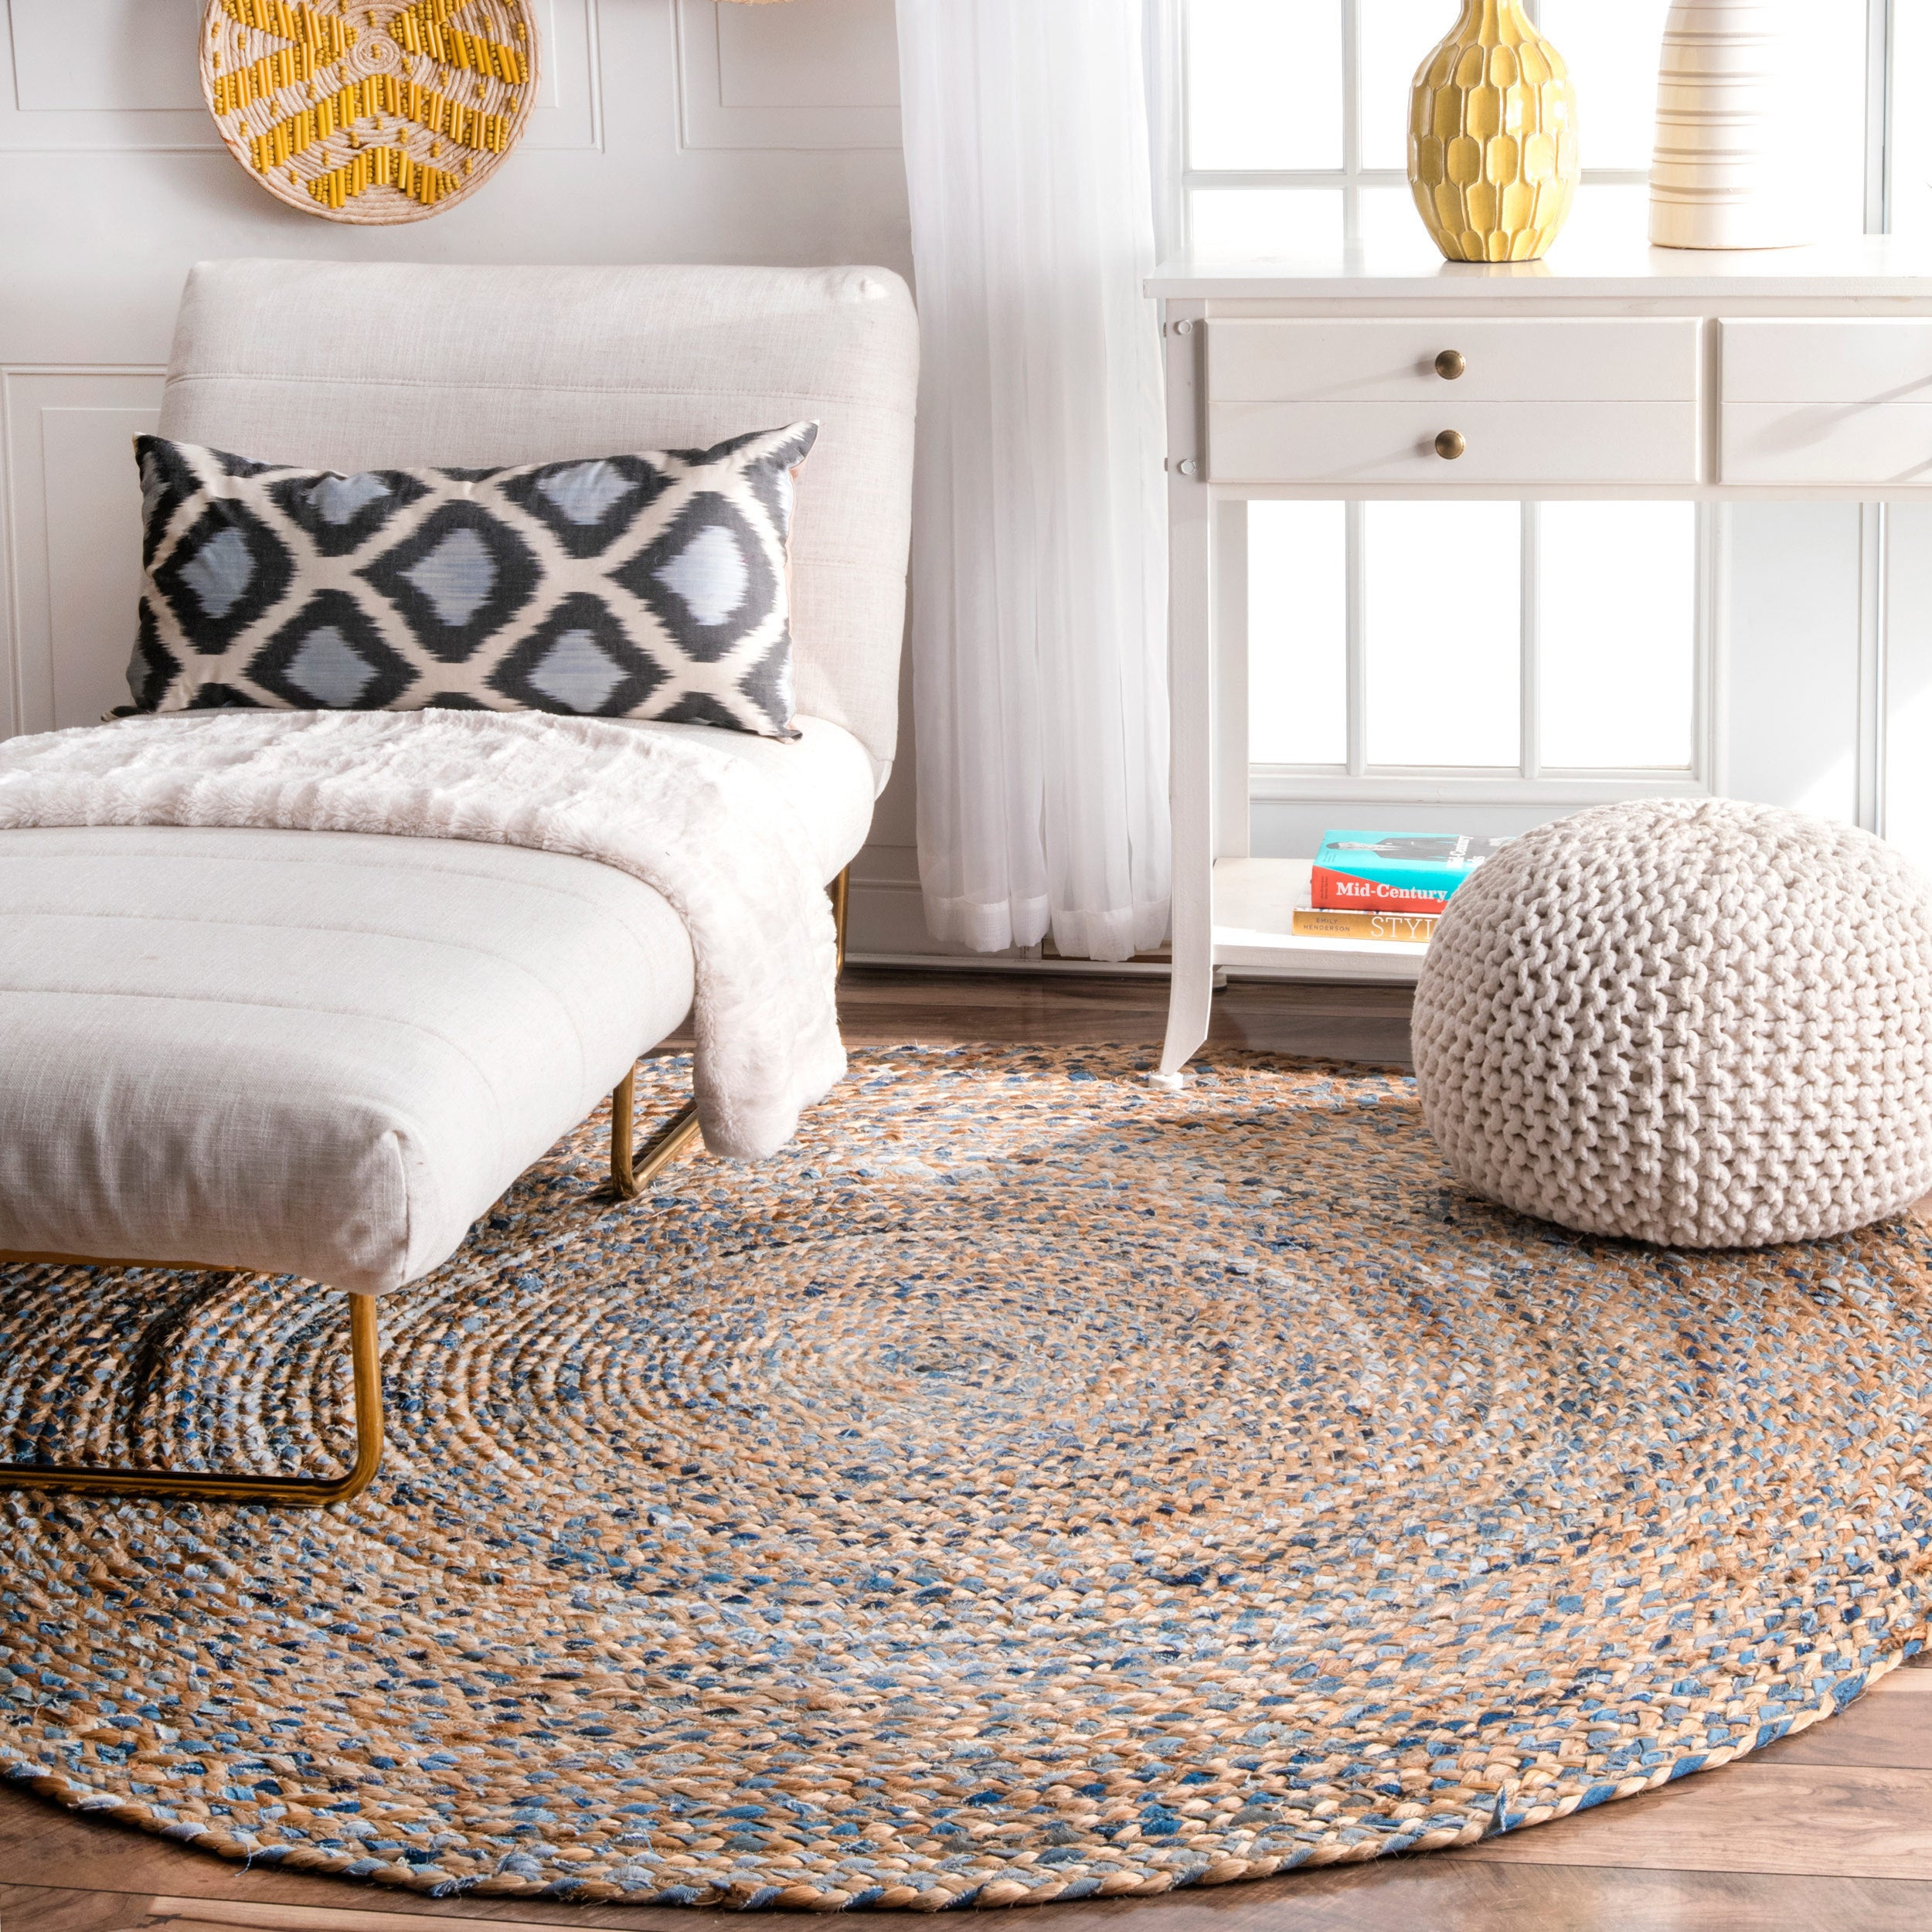 Shop nuloom handmade braided natural fiber jute round rug 6 round 6 round on sale free shipping today overstock com 14091983